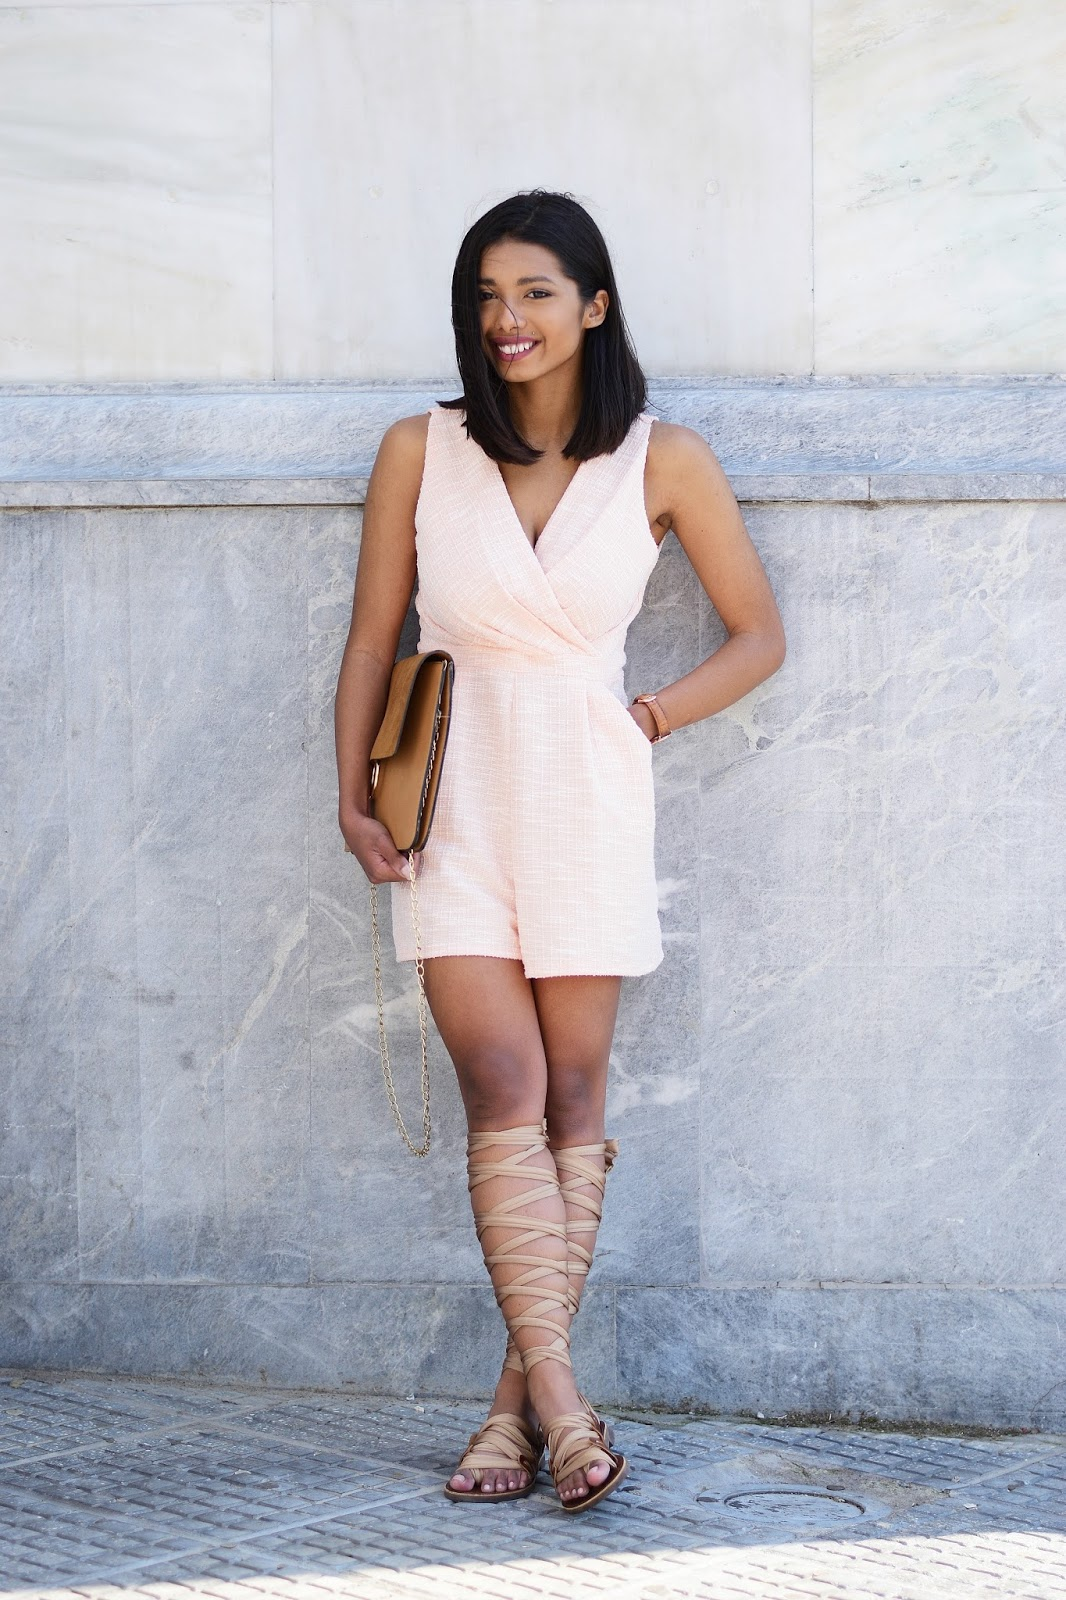 Greek gladiator sandals blush playsuit outfit inspiration